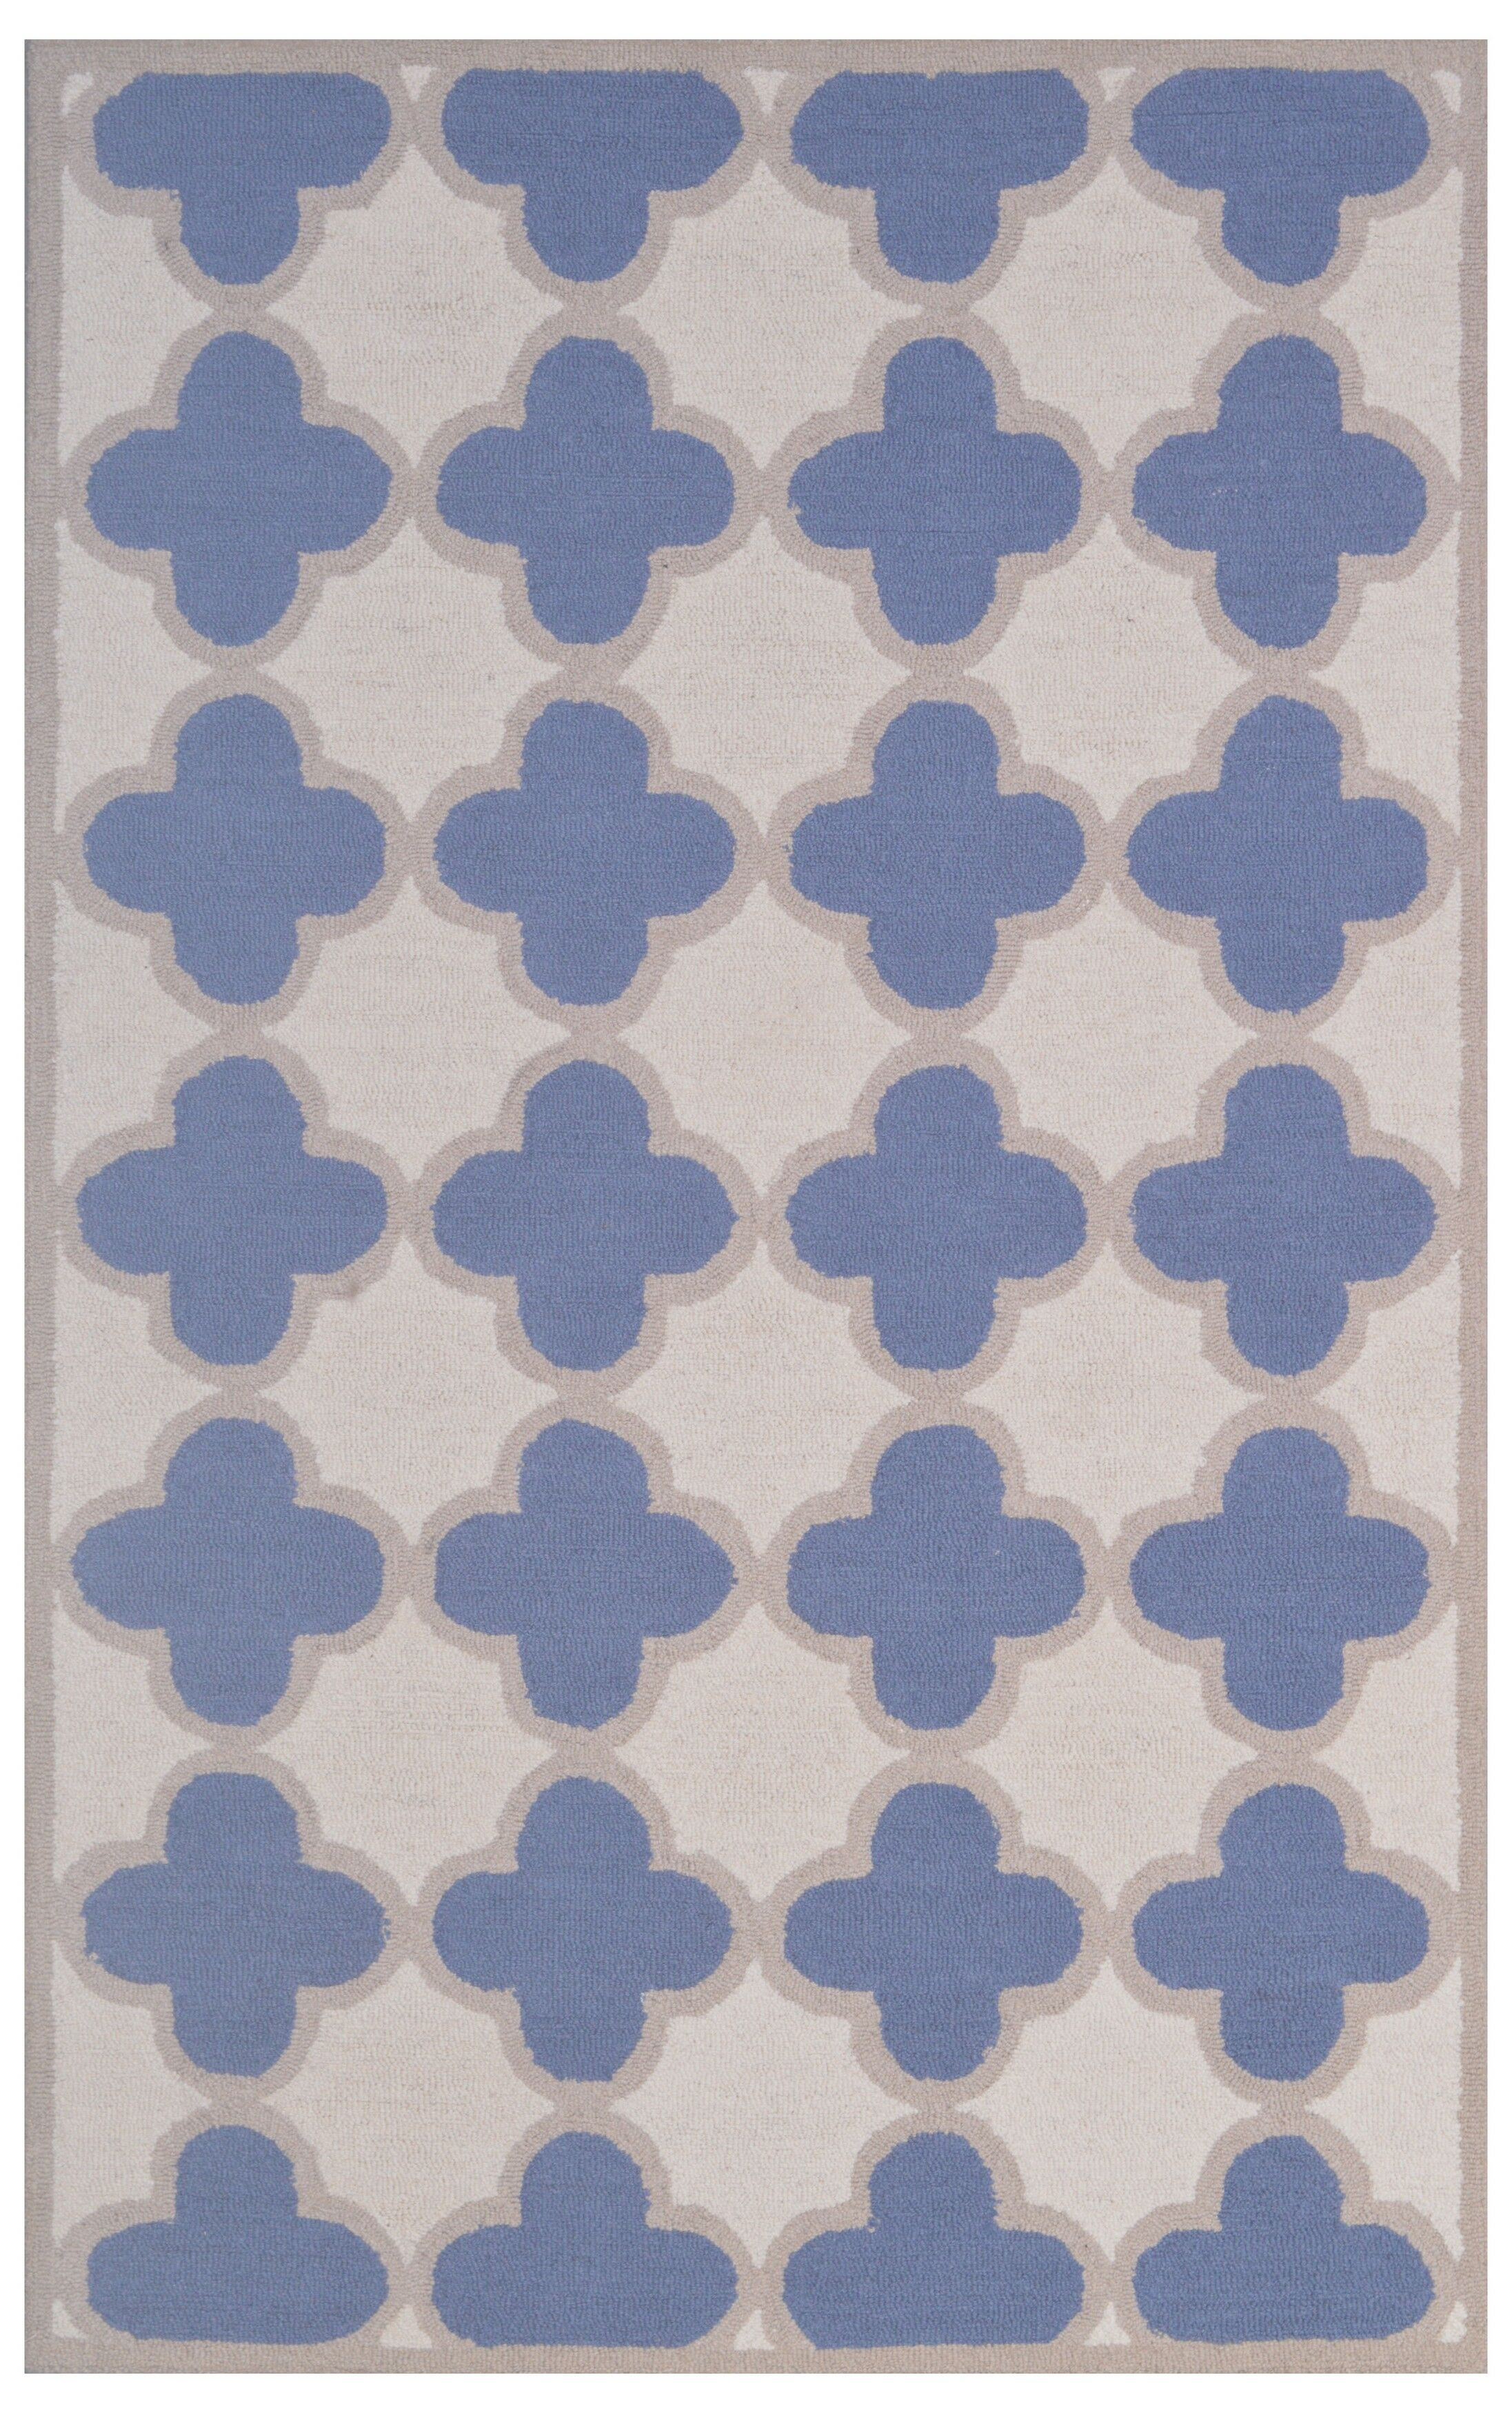 Wool Hand-Tufted Ivory/Blue Area Rug Rug Size: 5' x 8'